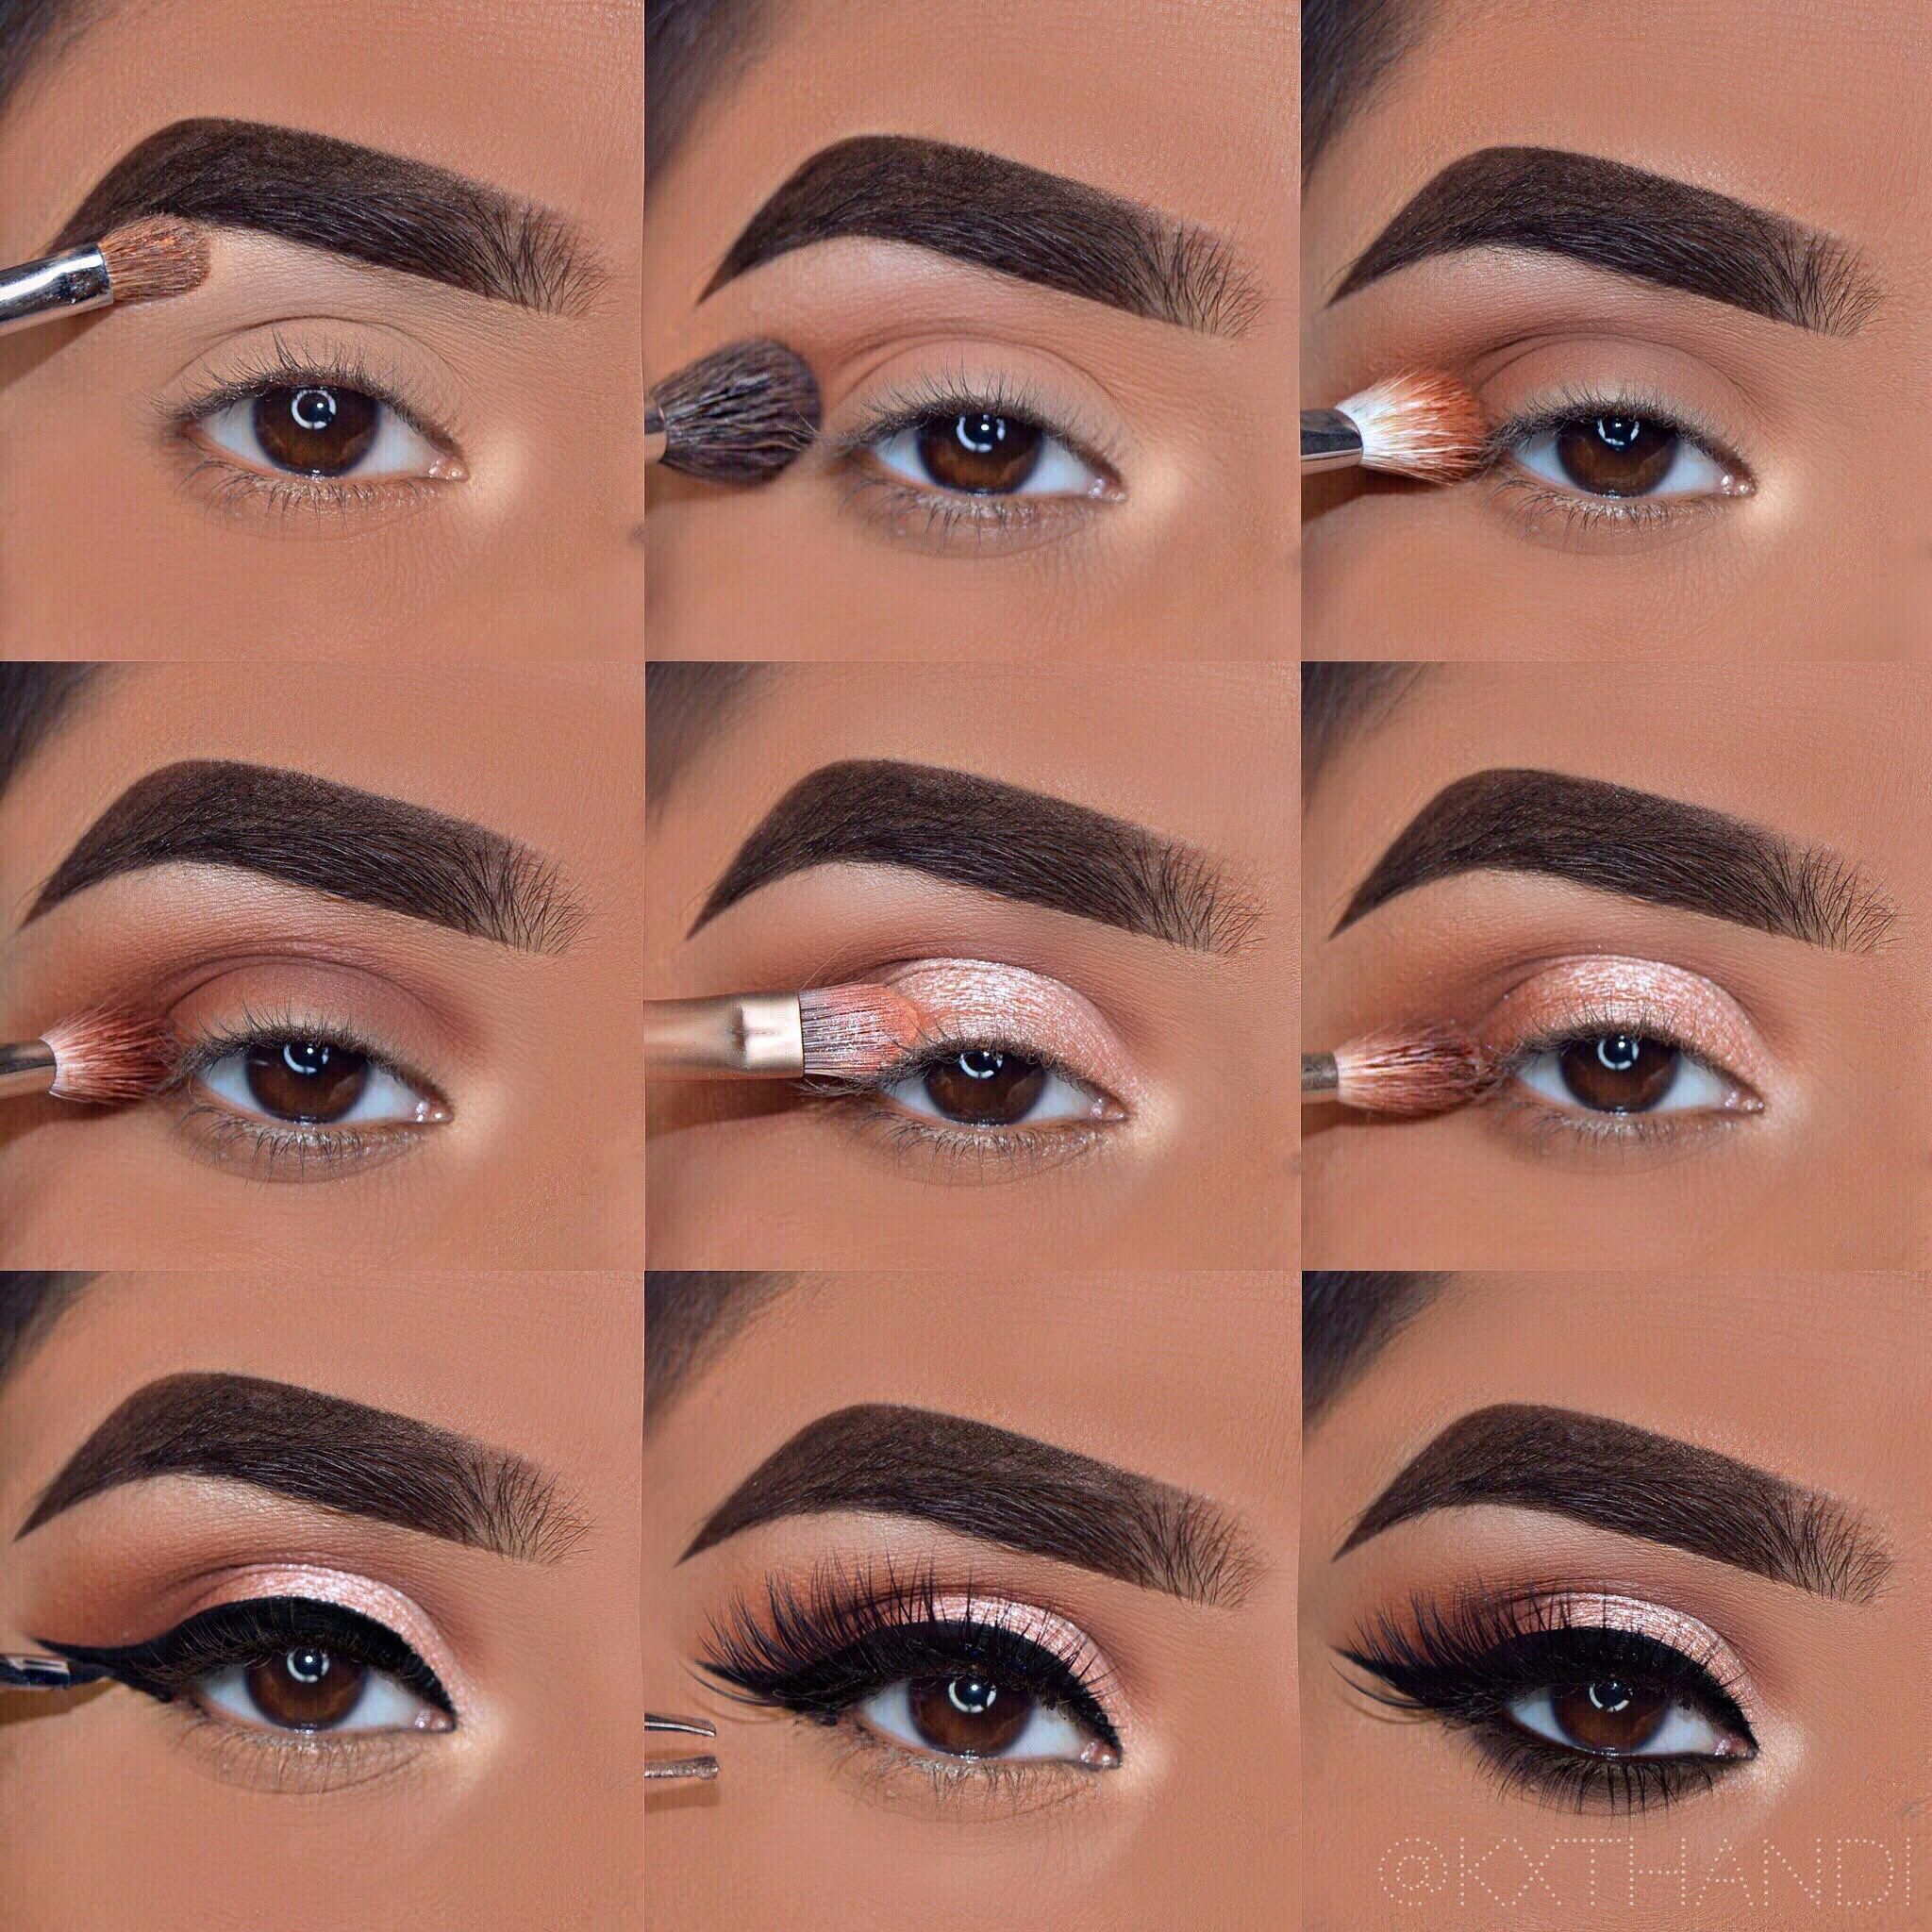 eye makeup can improve your beauty and also help to make you